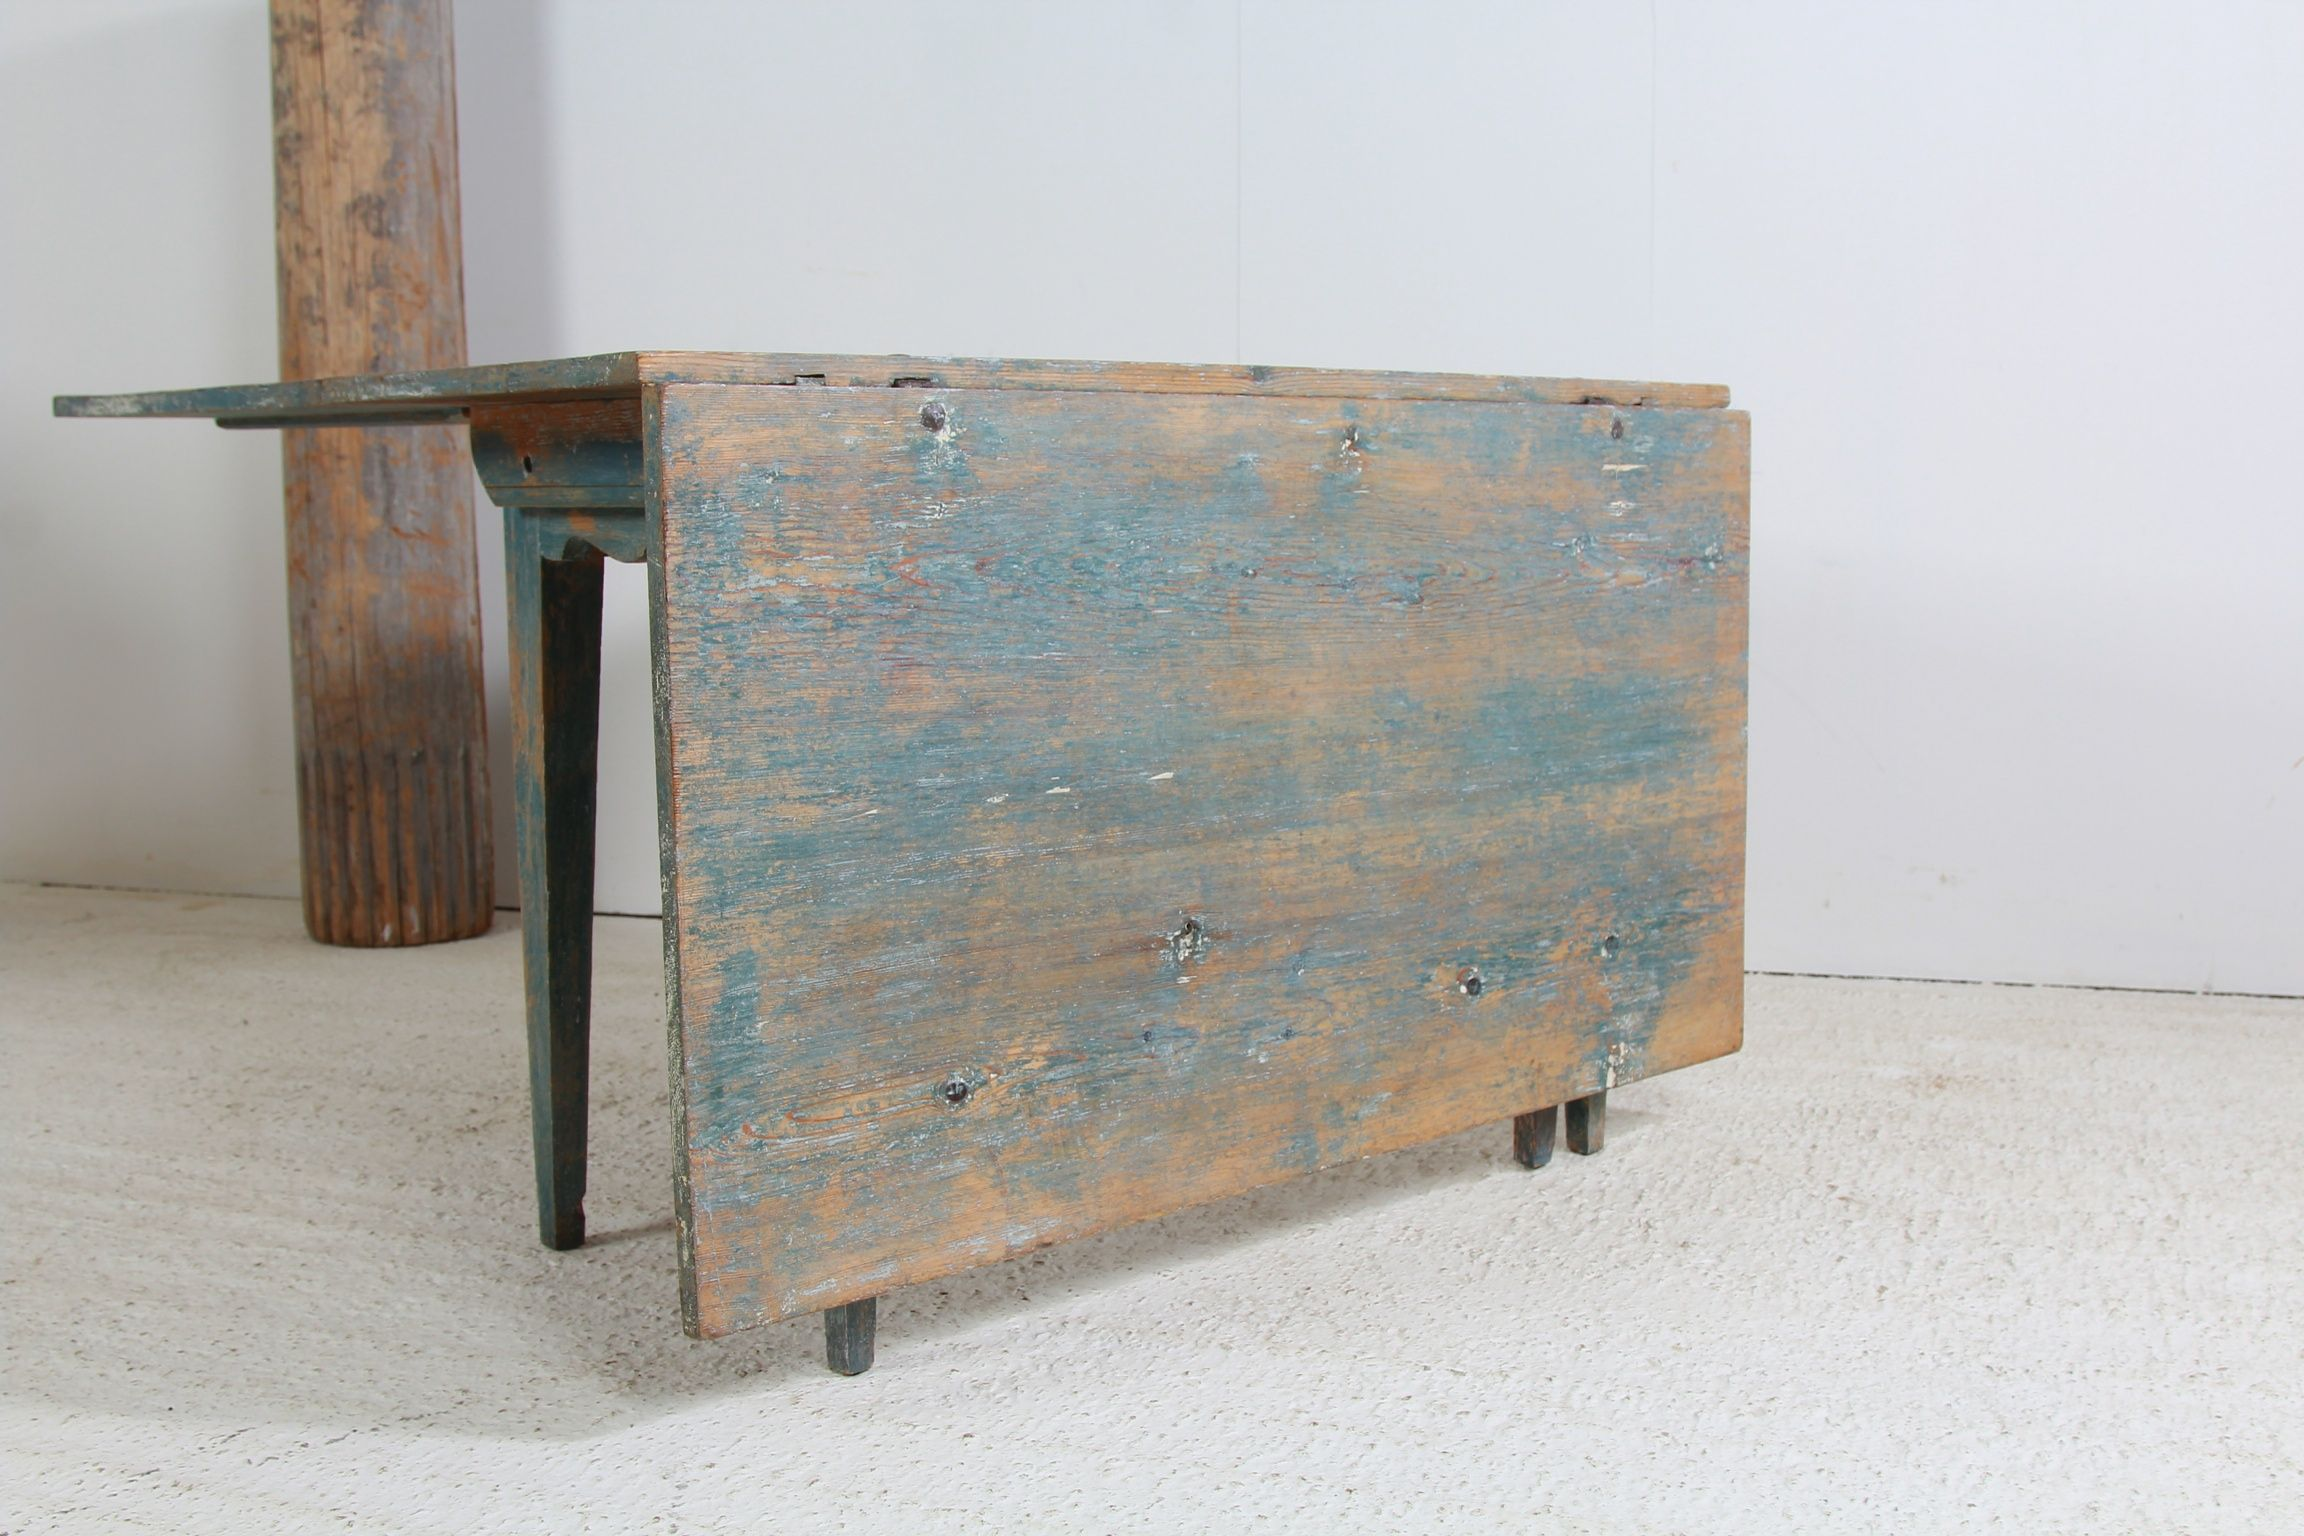 French Antique Furniture, Art Deco Interior Decoration, Painted Chests, Mirrors